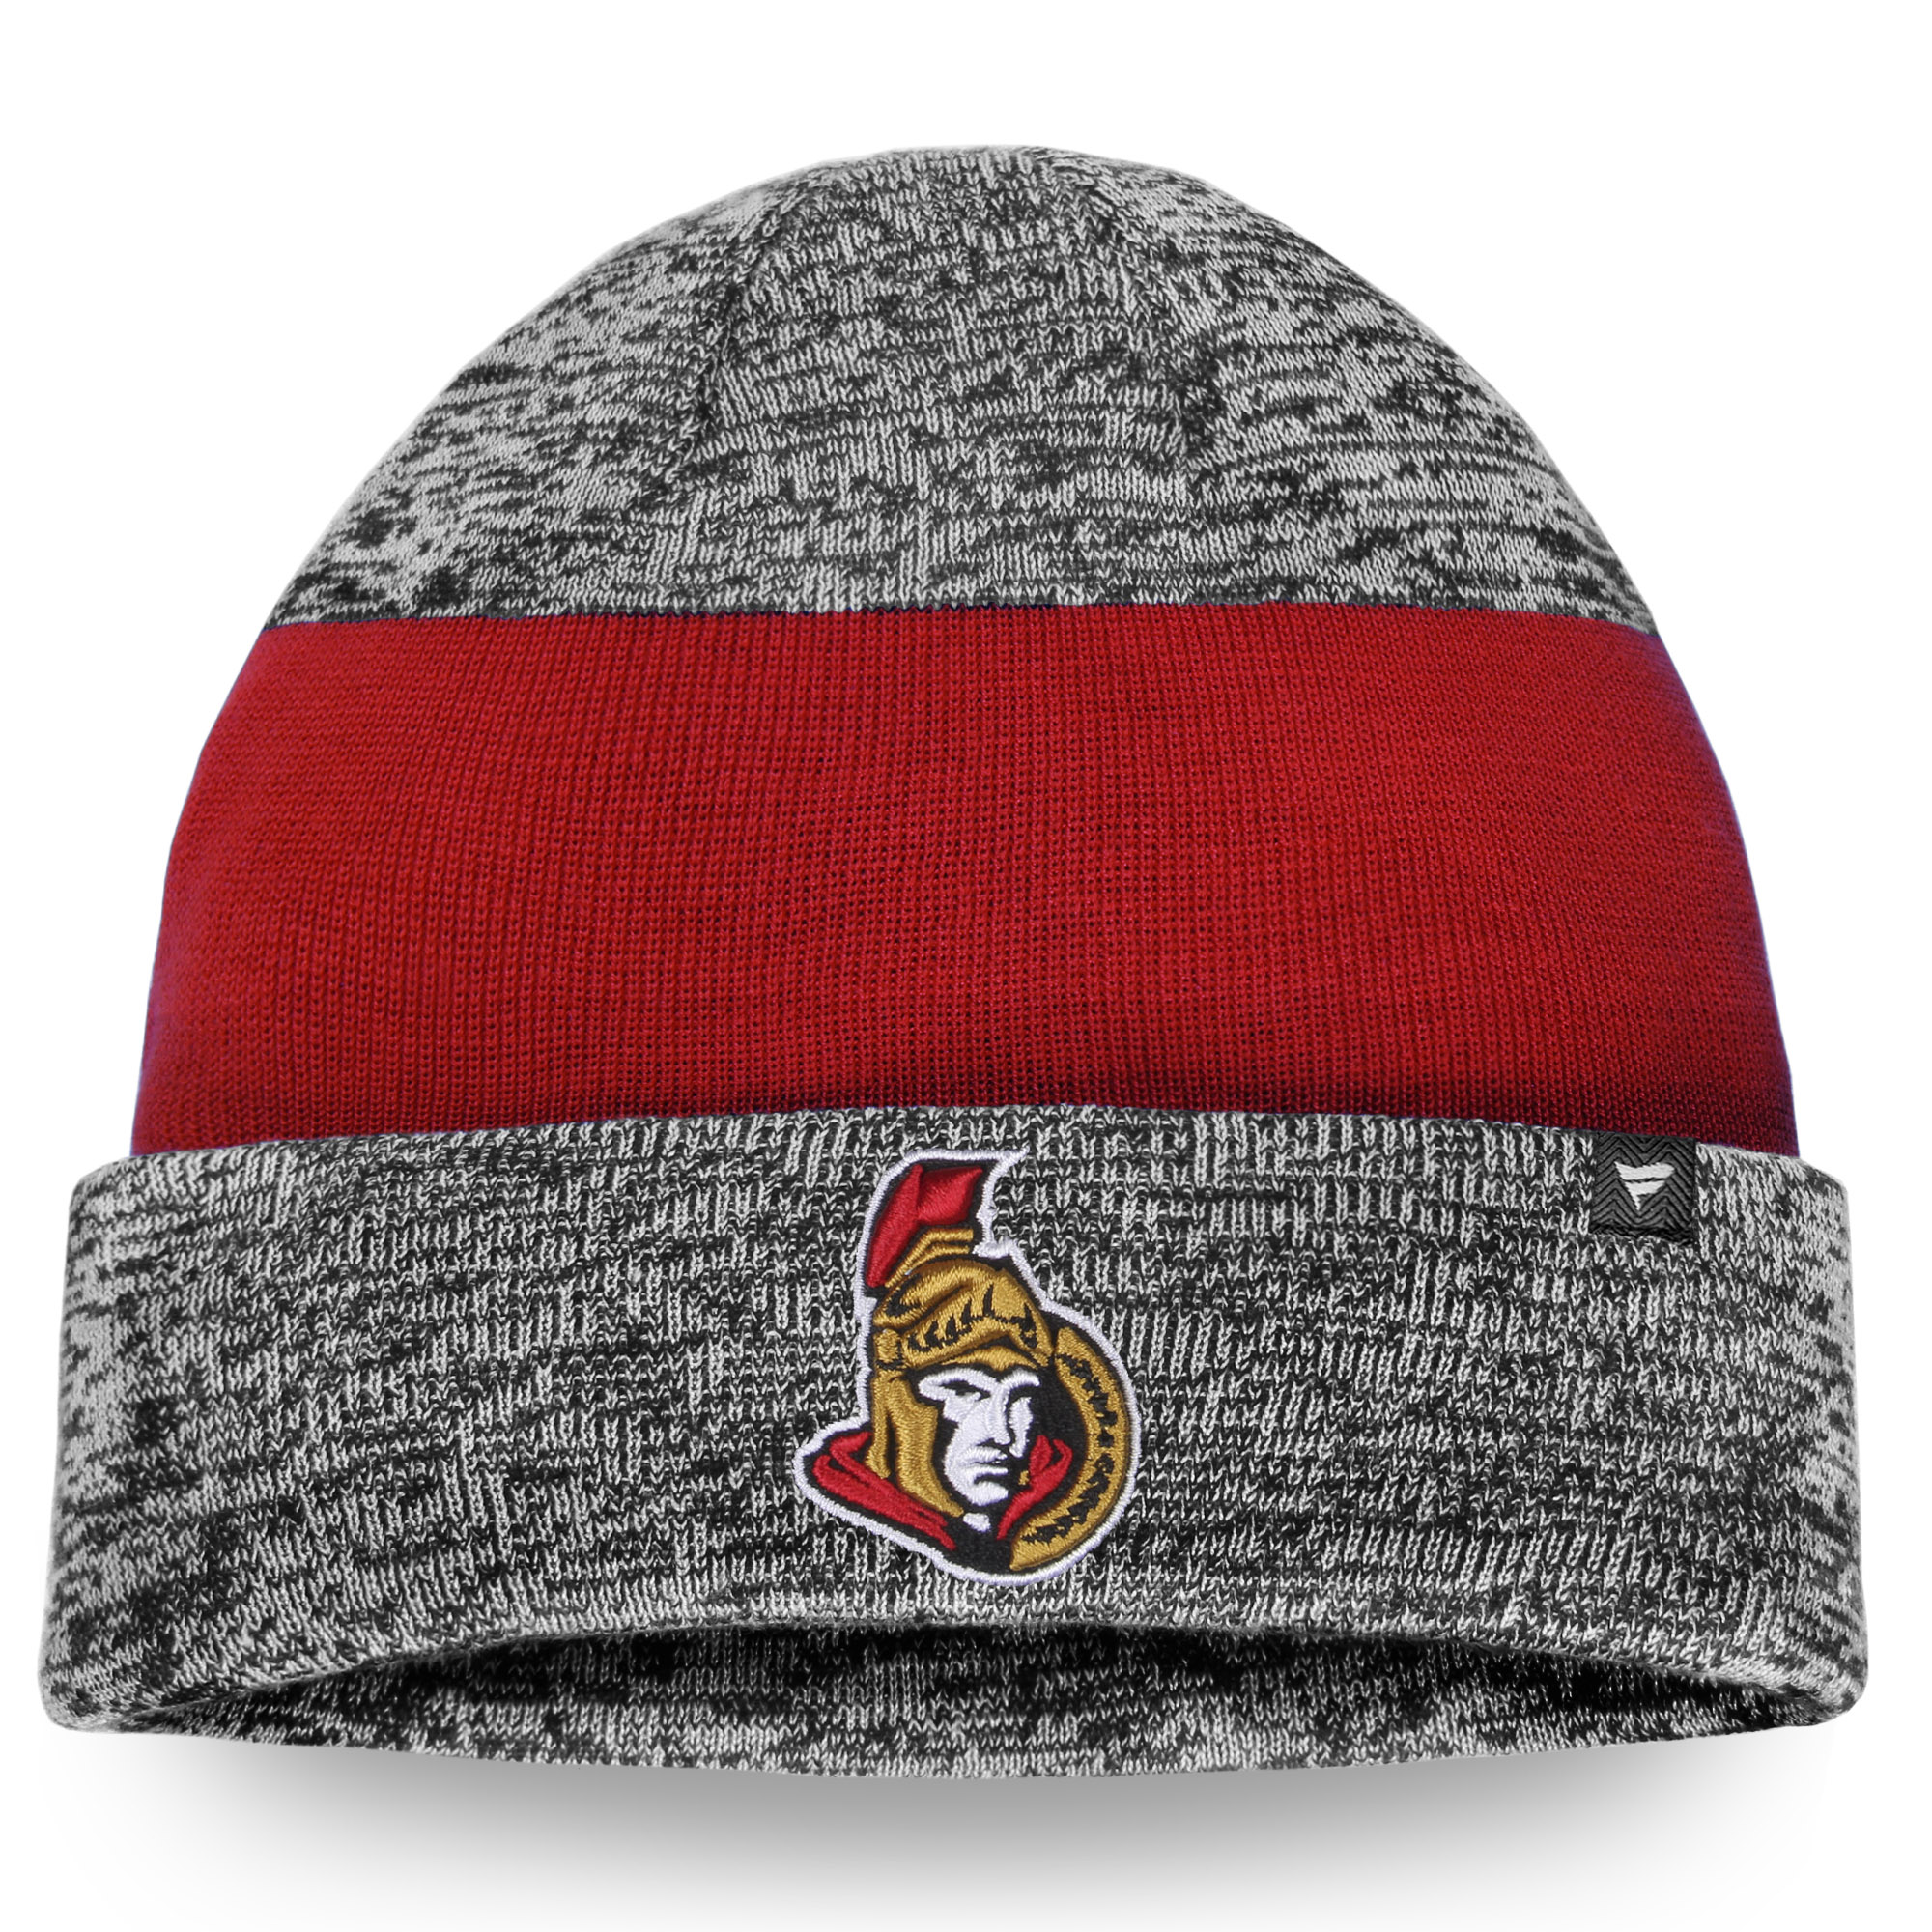 Ottawa Senators Static Cuffed Knit Hat - Gray/Red - OSFA